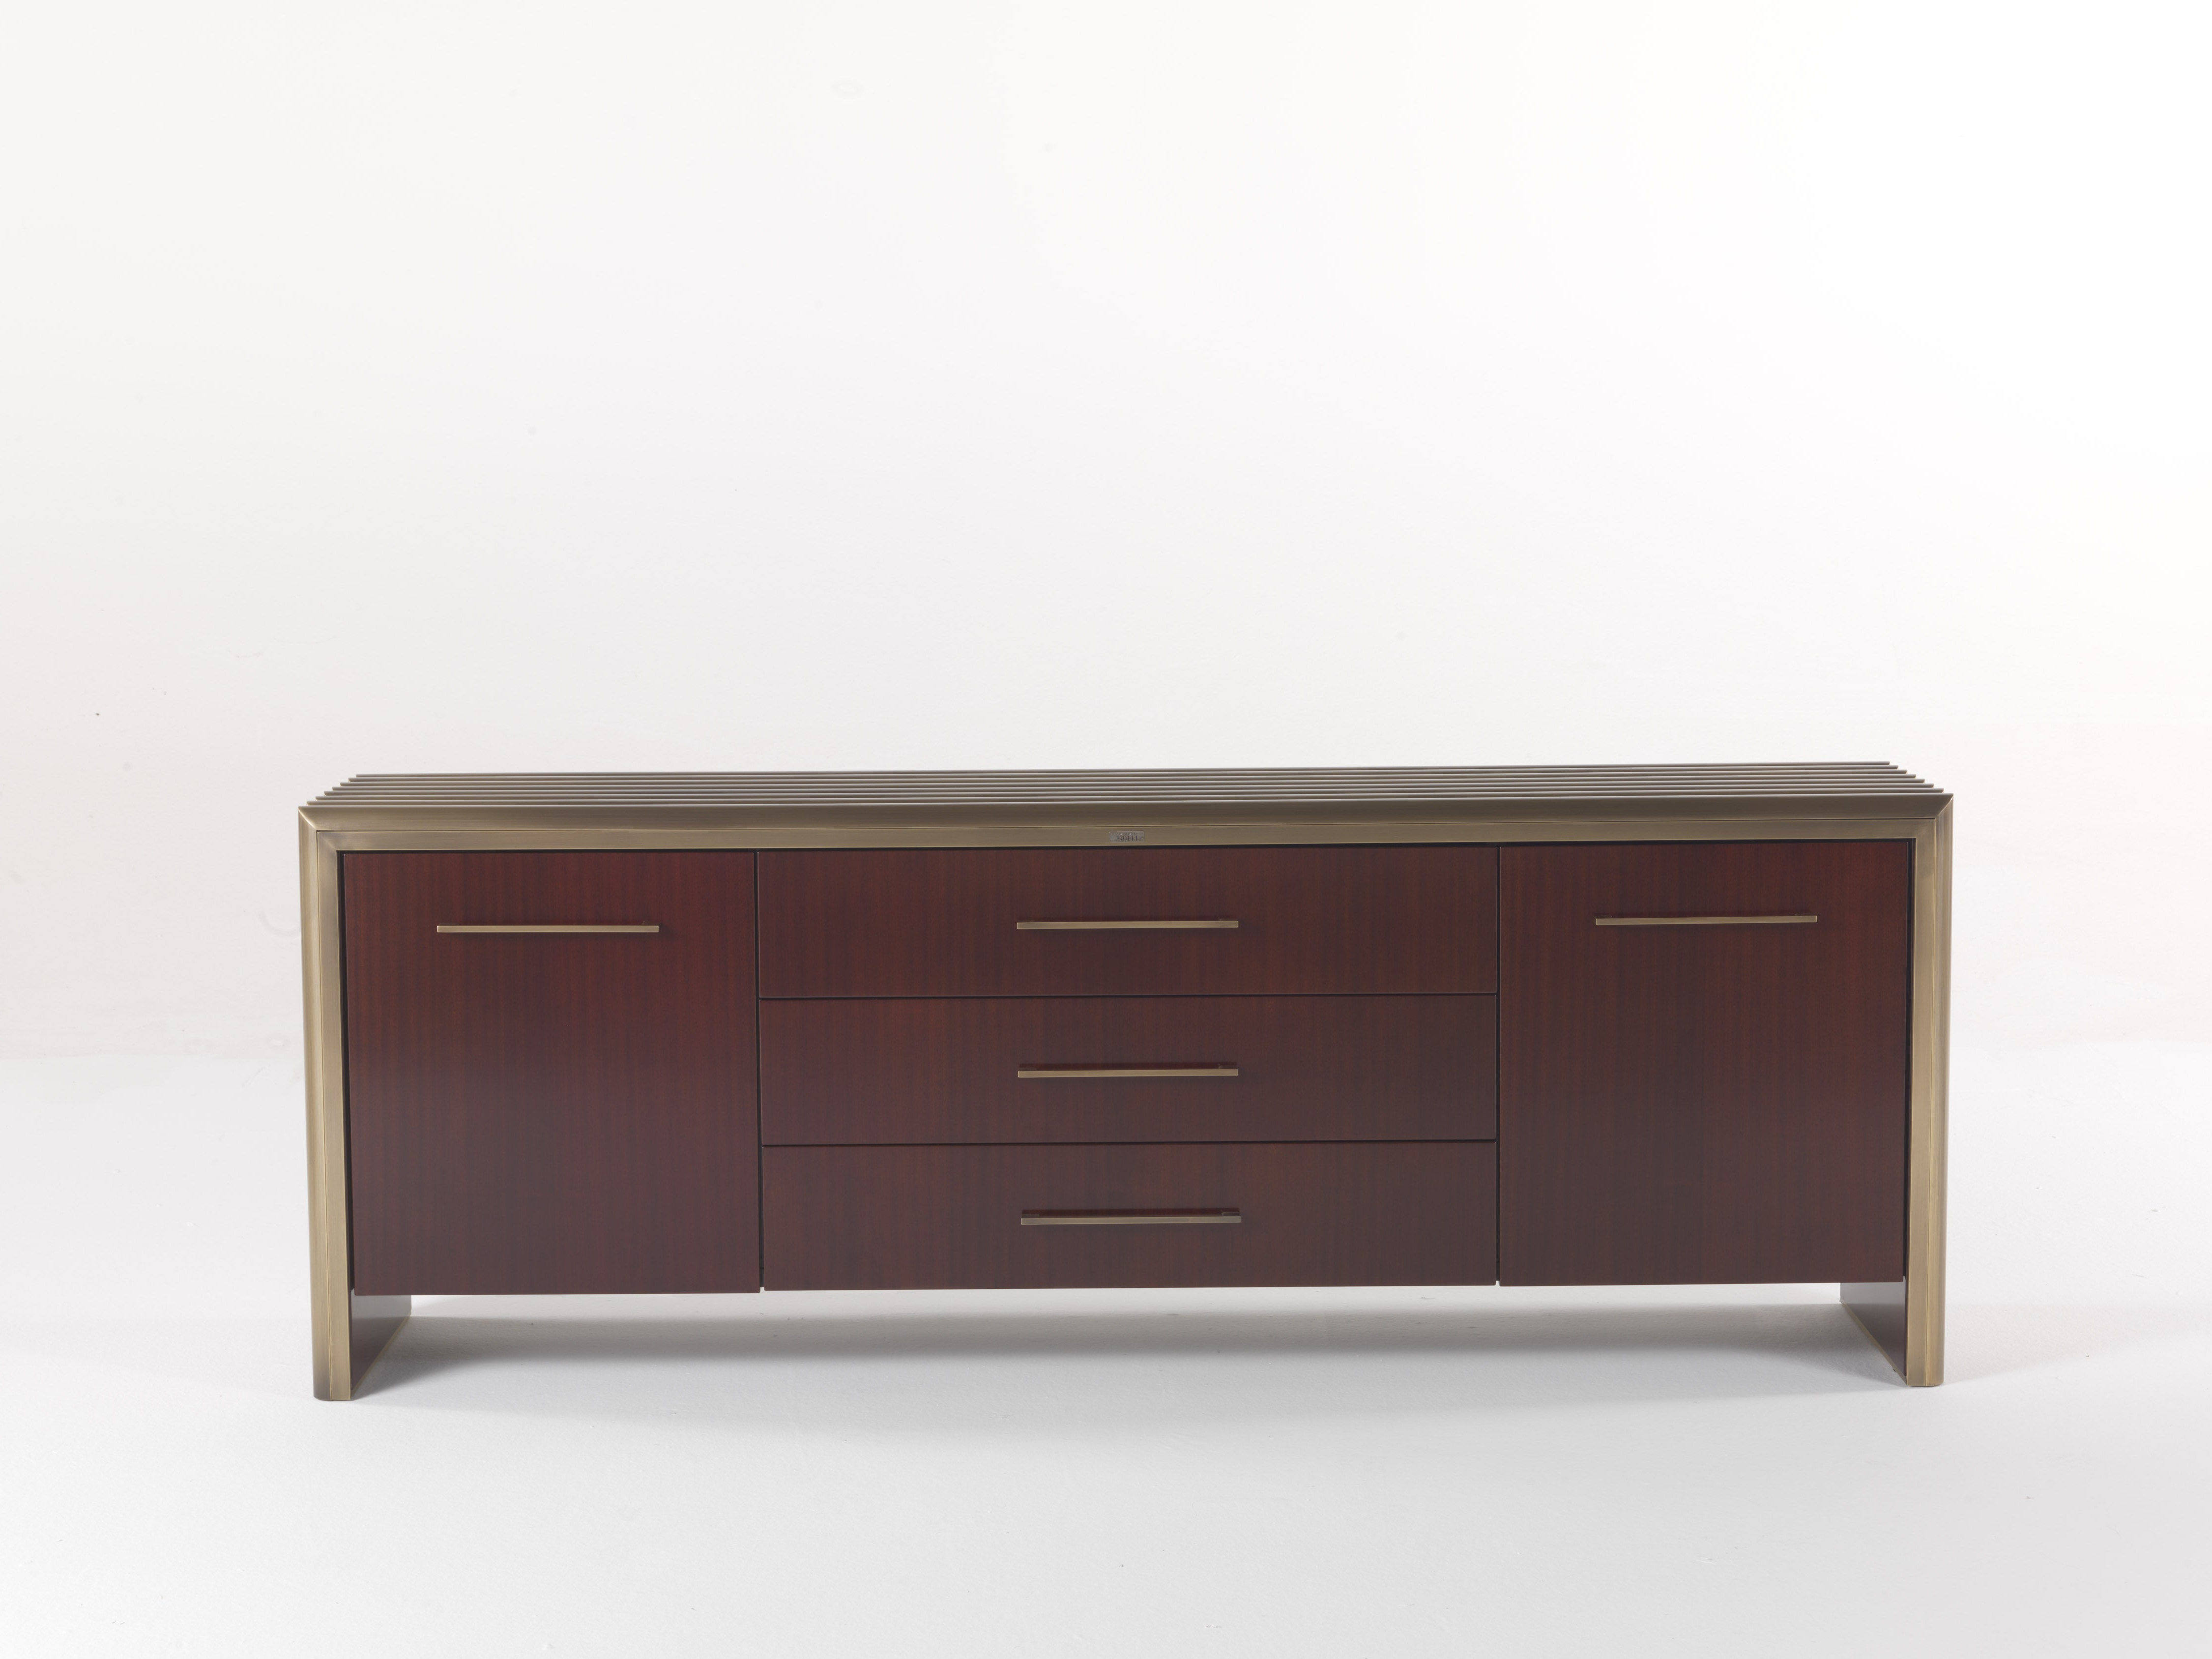 Famous Gianfranco Ferré Tate Sideboard In Wood And Brass For Sale Intended For Tate Sideboards (View 6 of 20)